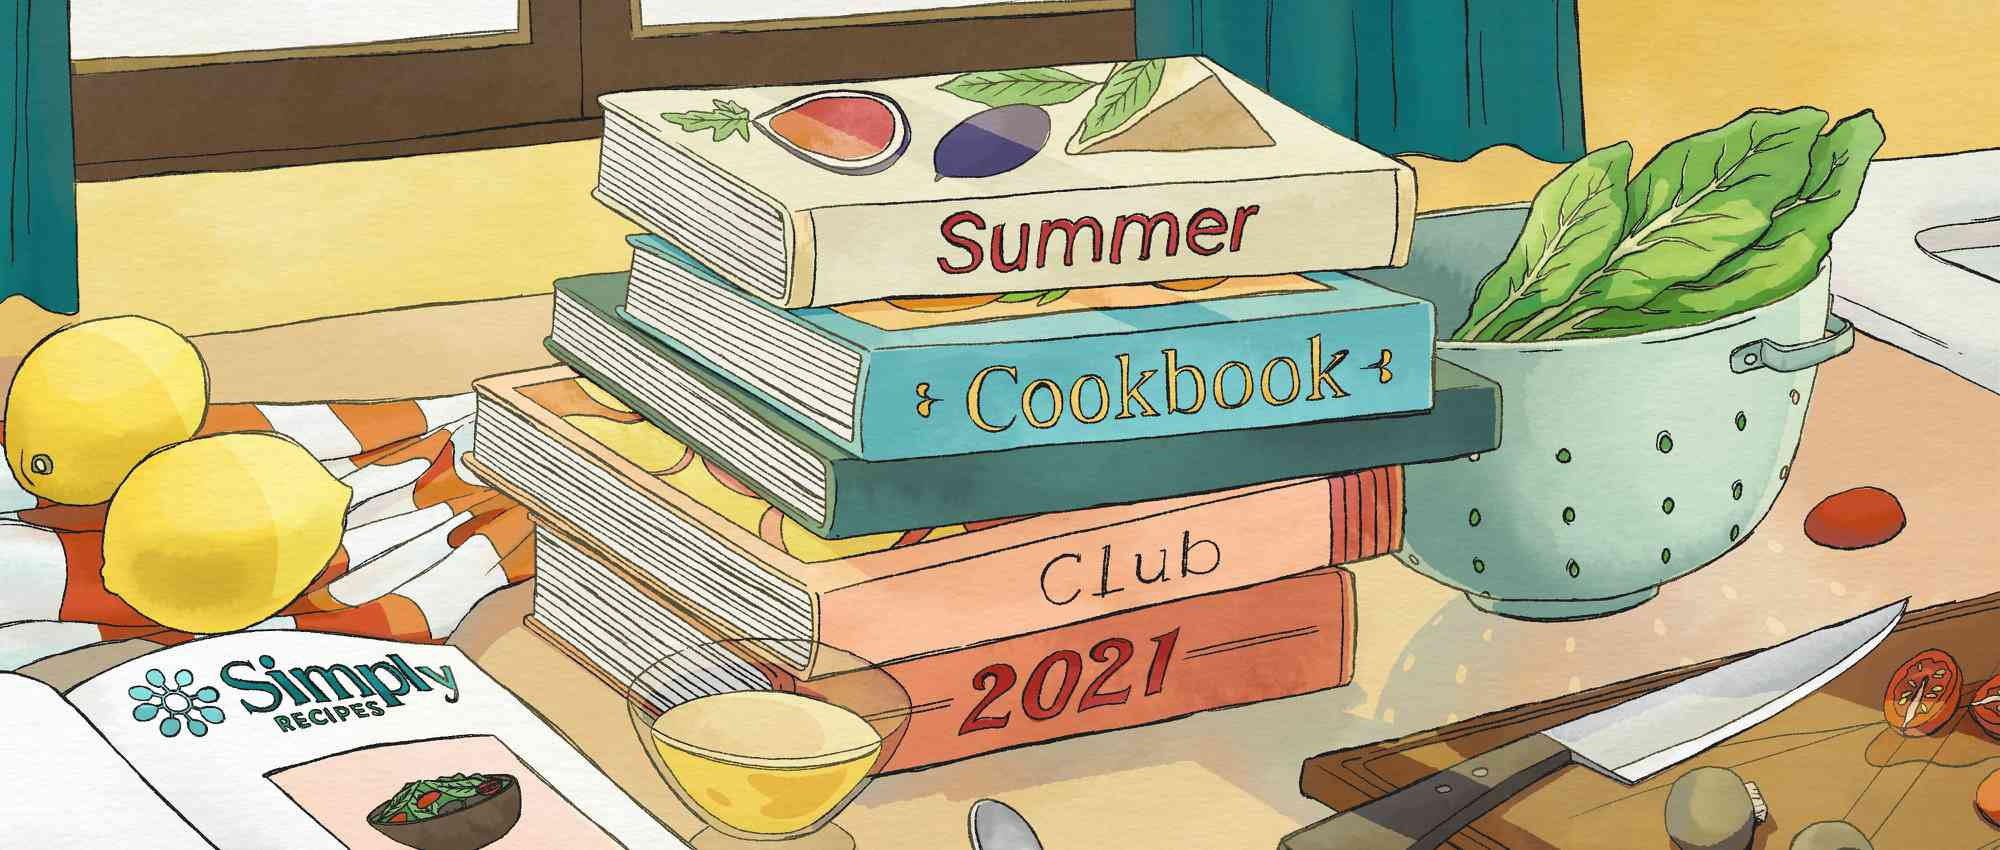 Summer Cookbook Club 2021 illustration cookbooks on counter with kitchen items